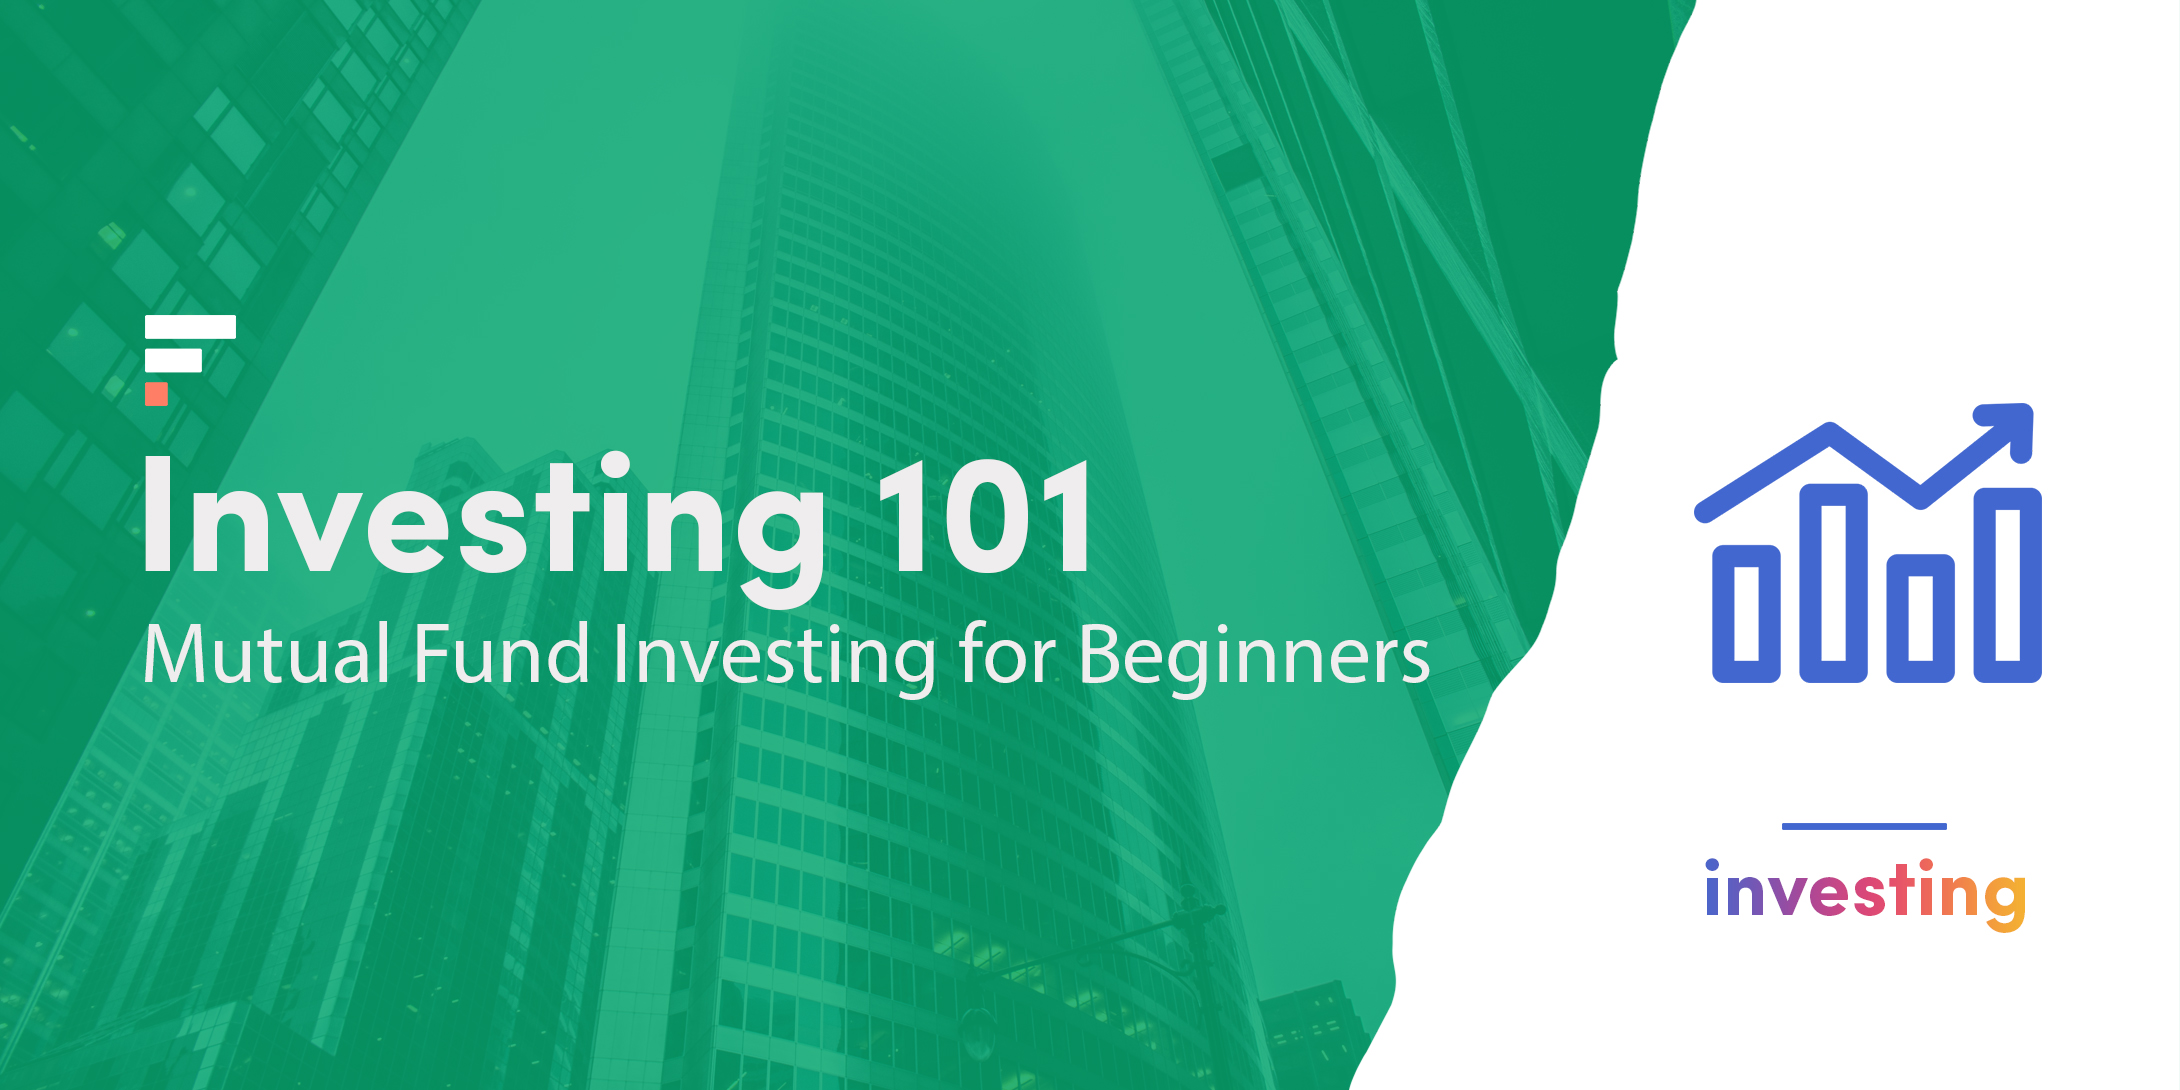 Mutual fund investing for beginners